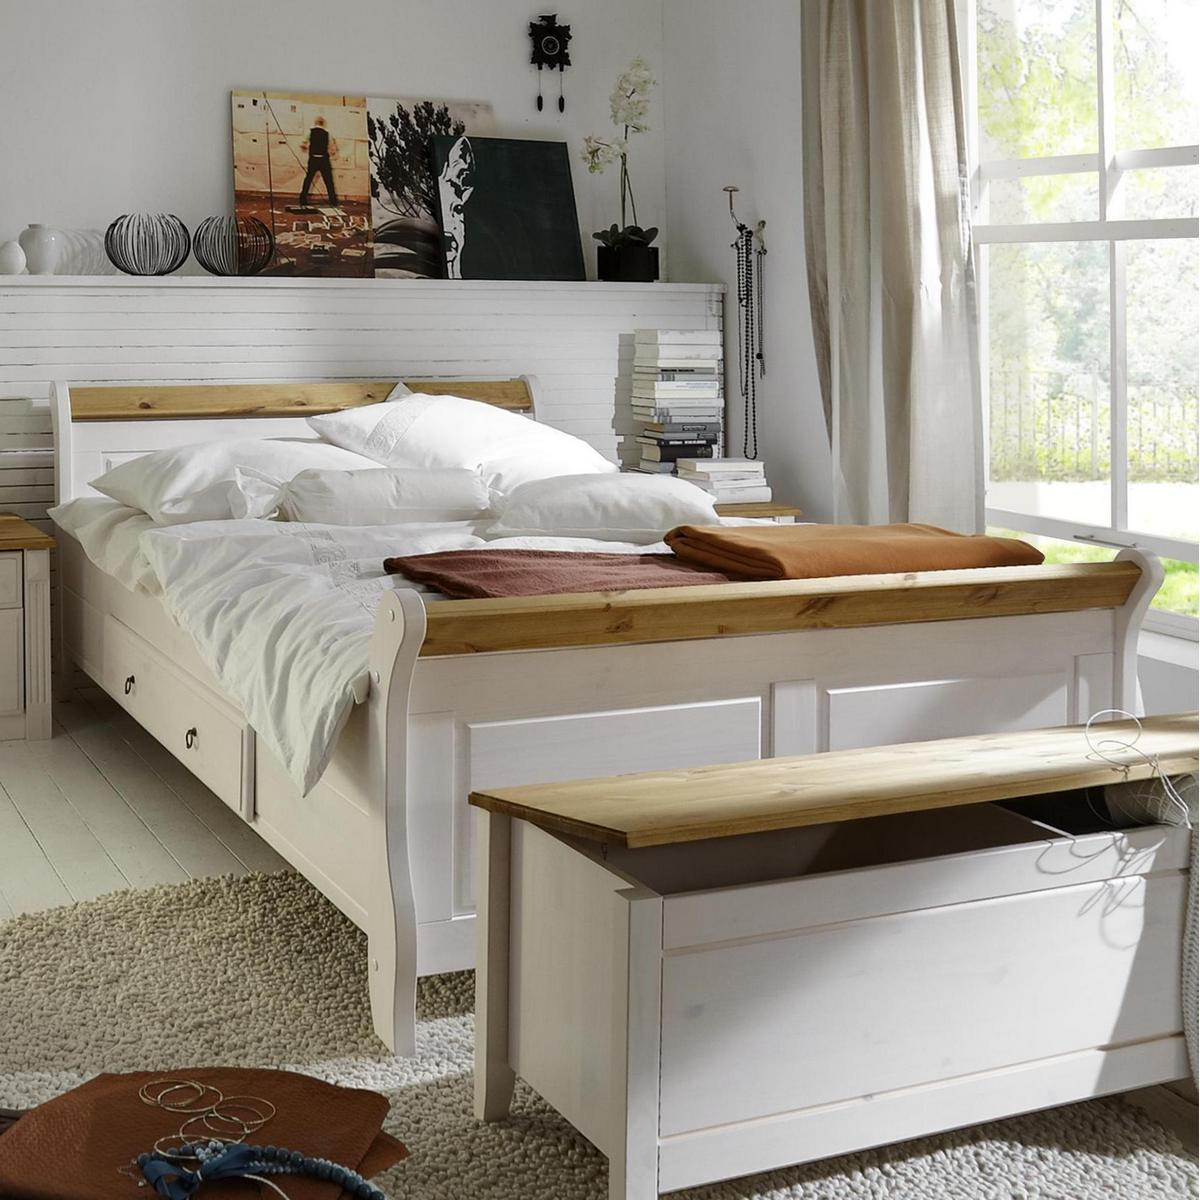 massivholz bett 100x200 eva kiefer massiv 2 farbig wei lackiert gelaugt ge lt. Black Bedroom Furniture Sets. Home Design Ideas